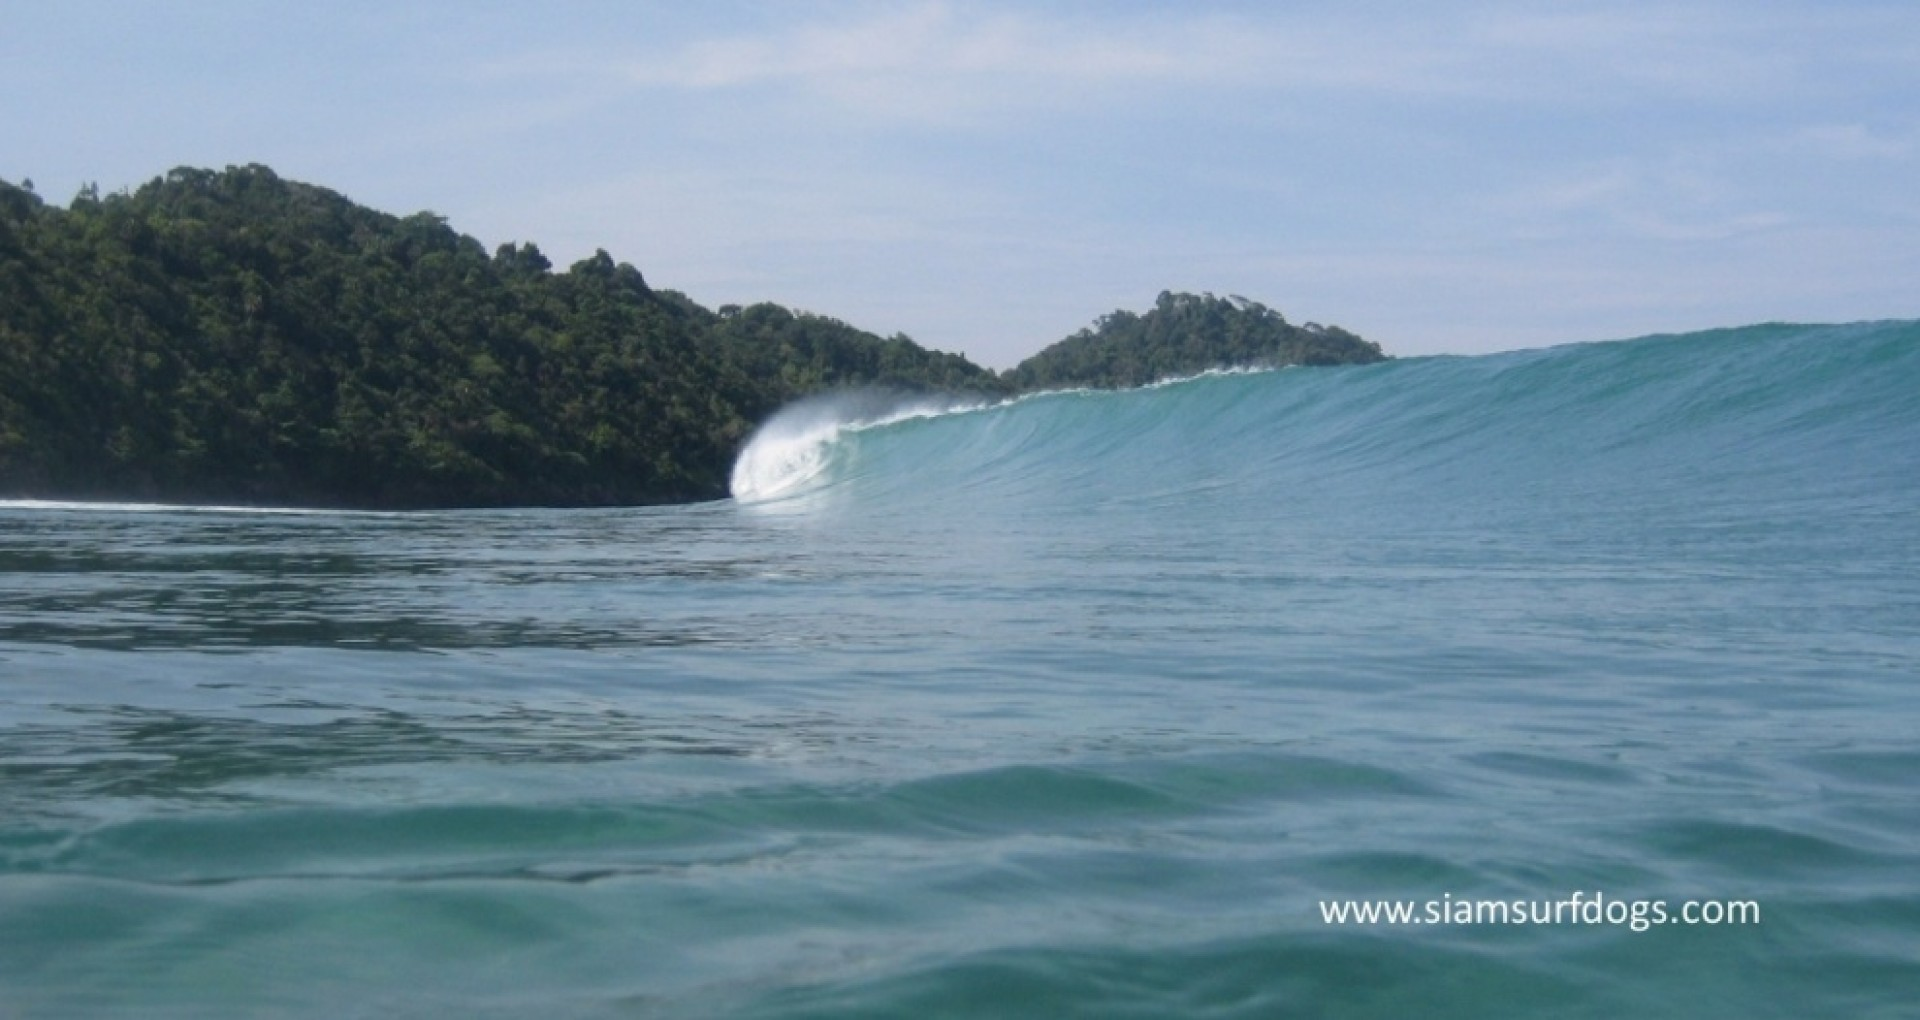 SiamSurfdogs.com's photo of Khao Lak